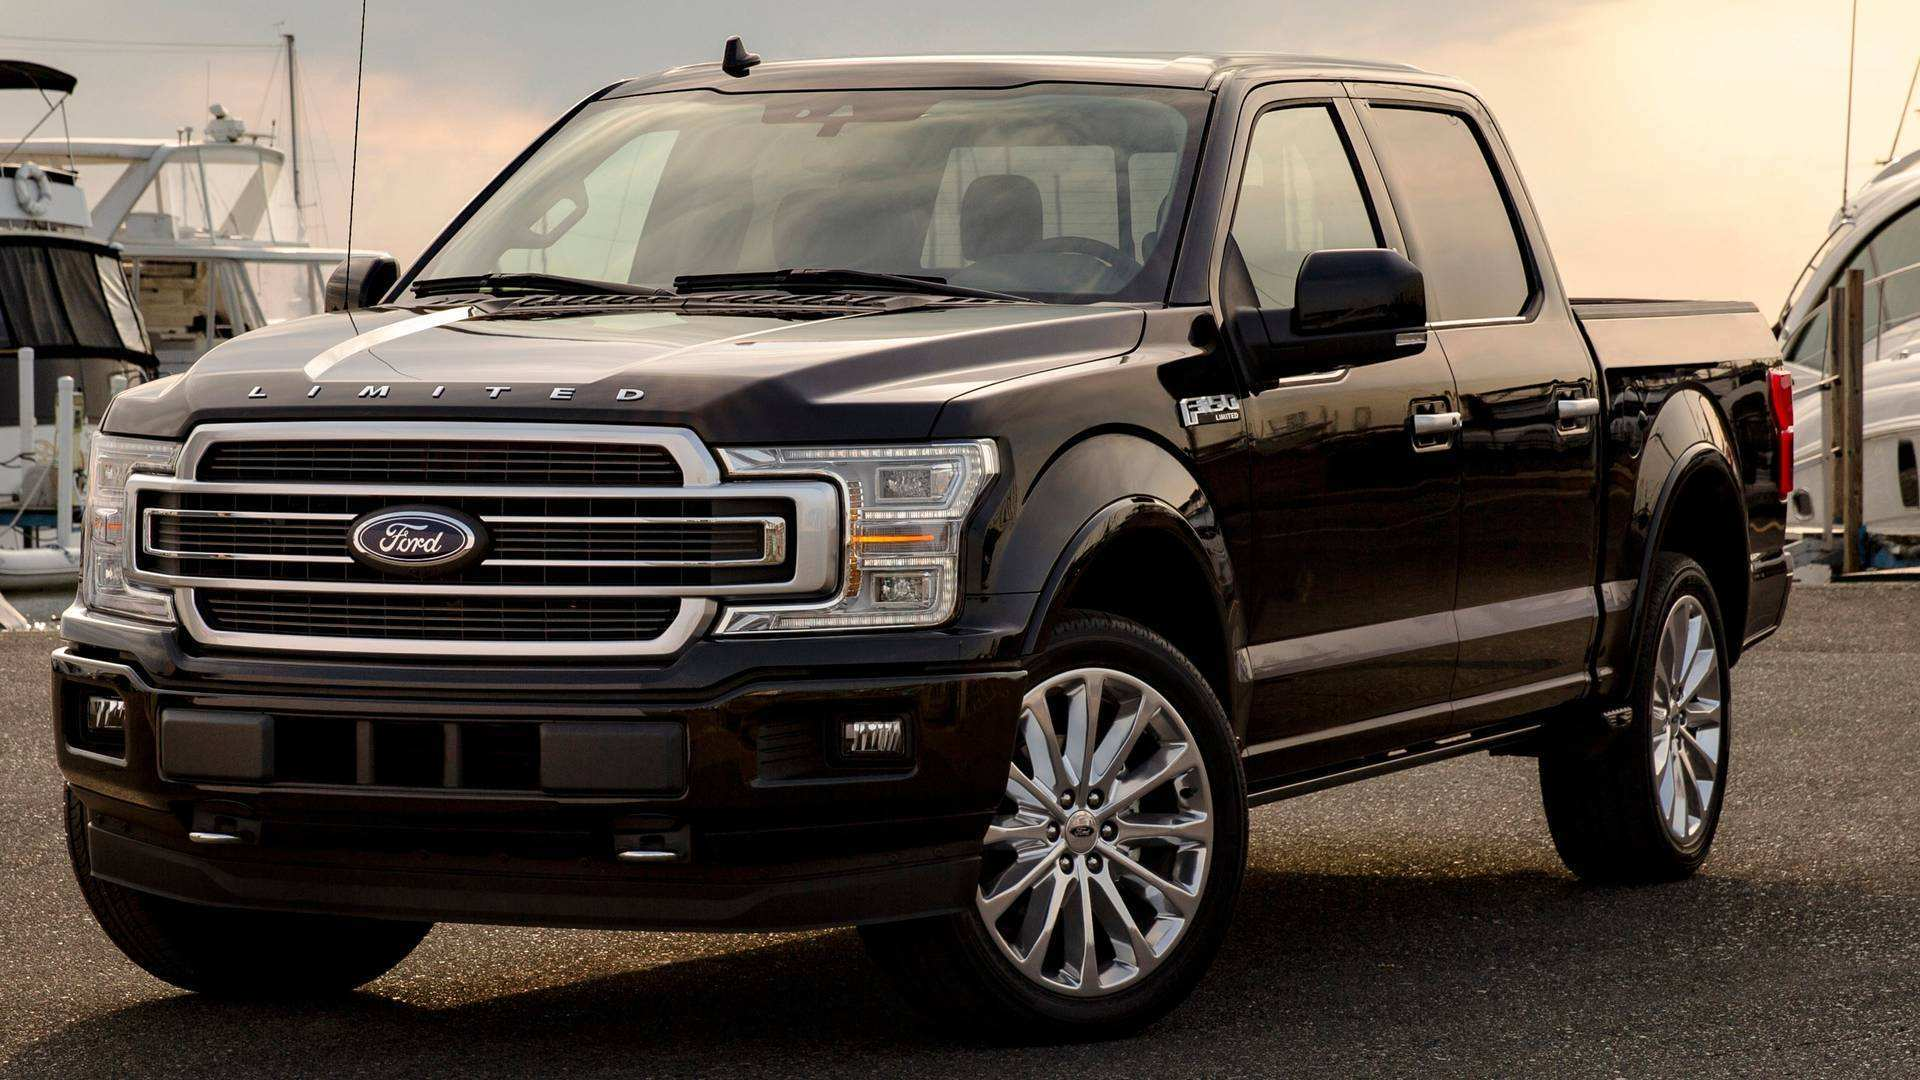 66 All New 2019 Ford F 150 Limited New Concept